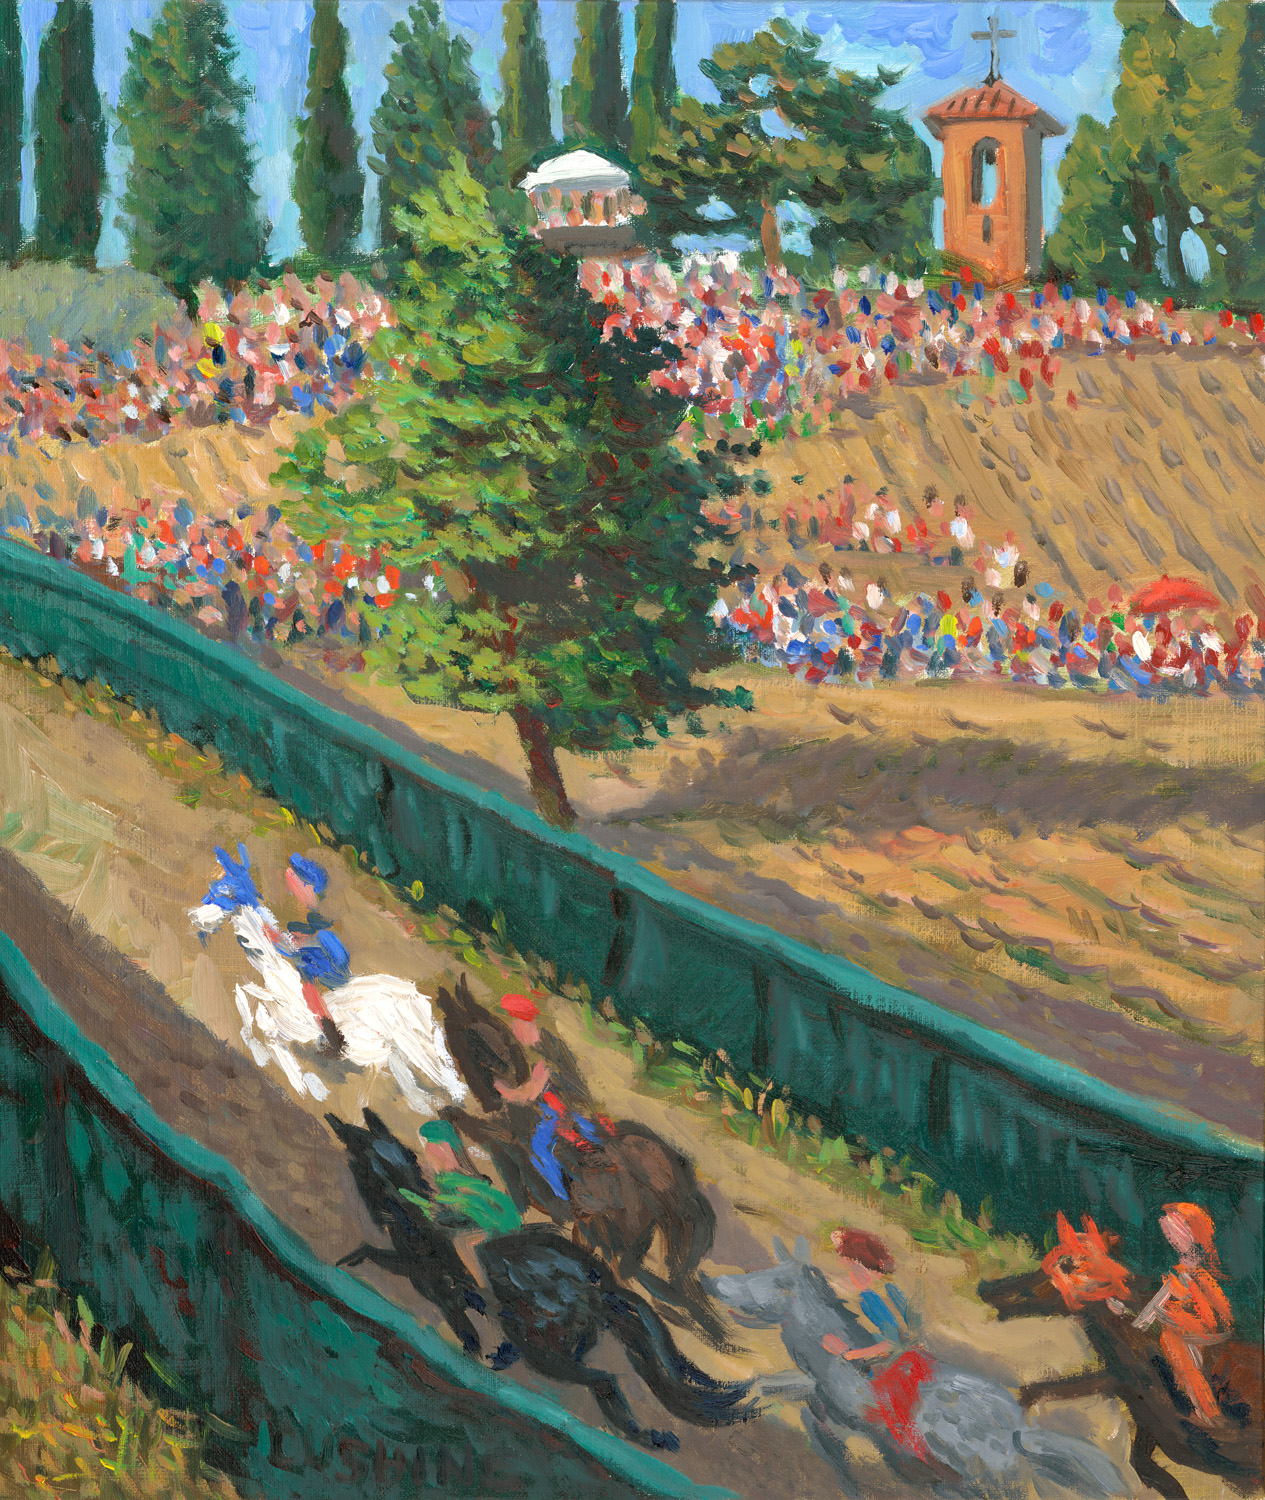 """painted from life during a """"palio"""" (horse race) in a small Tuscan town. The horses were painted from an impression that was based on observing them for about two seconds!"""